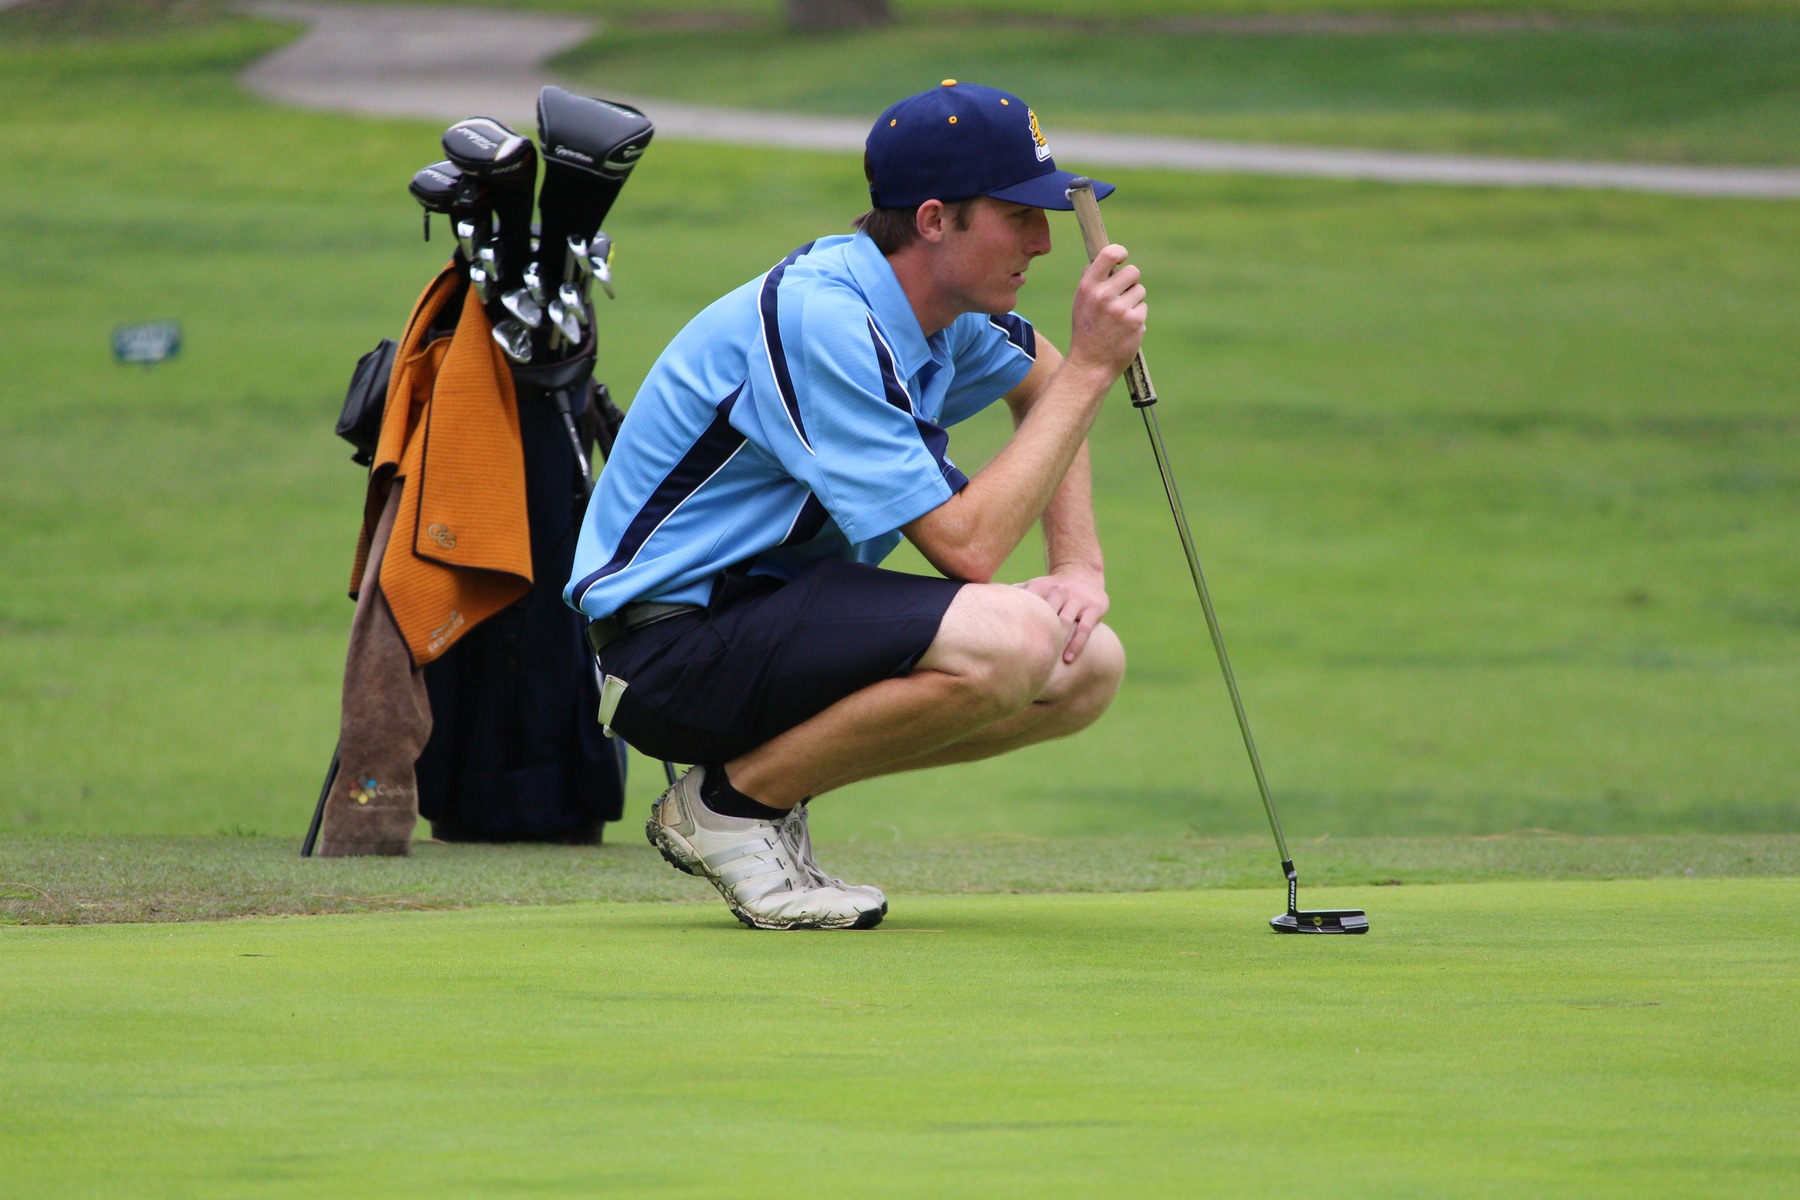 Men's Golf Sits Atop OEC Standings with Win at Candlewood